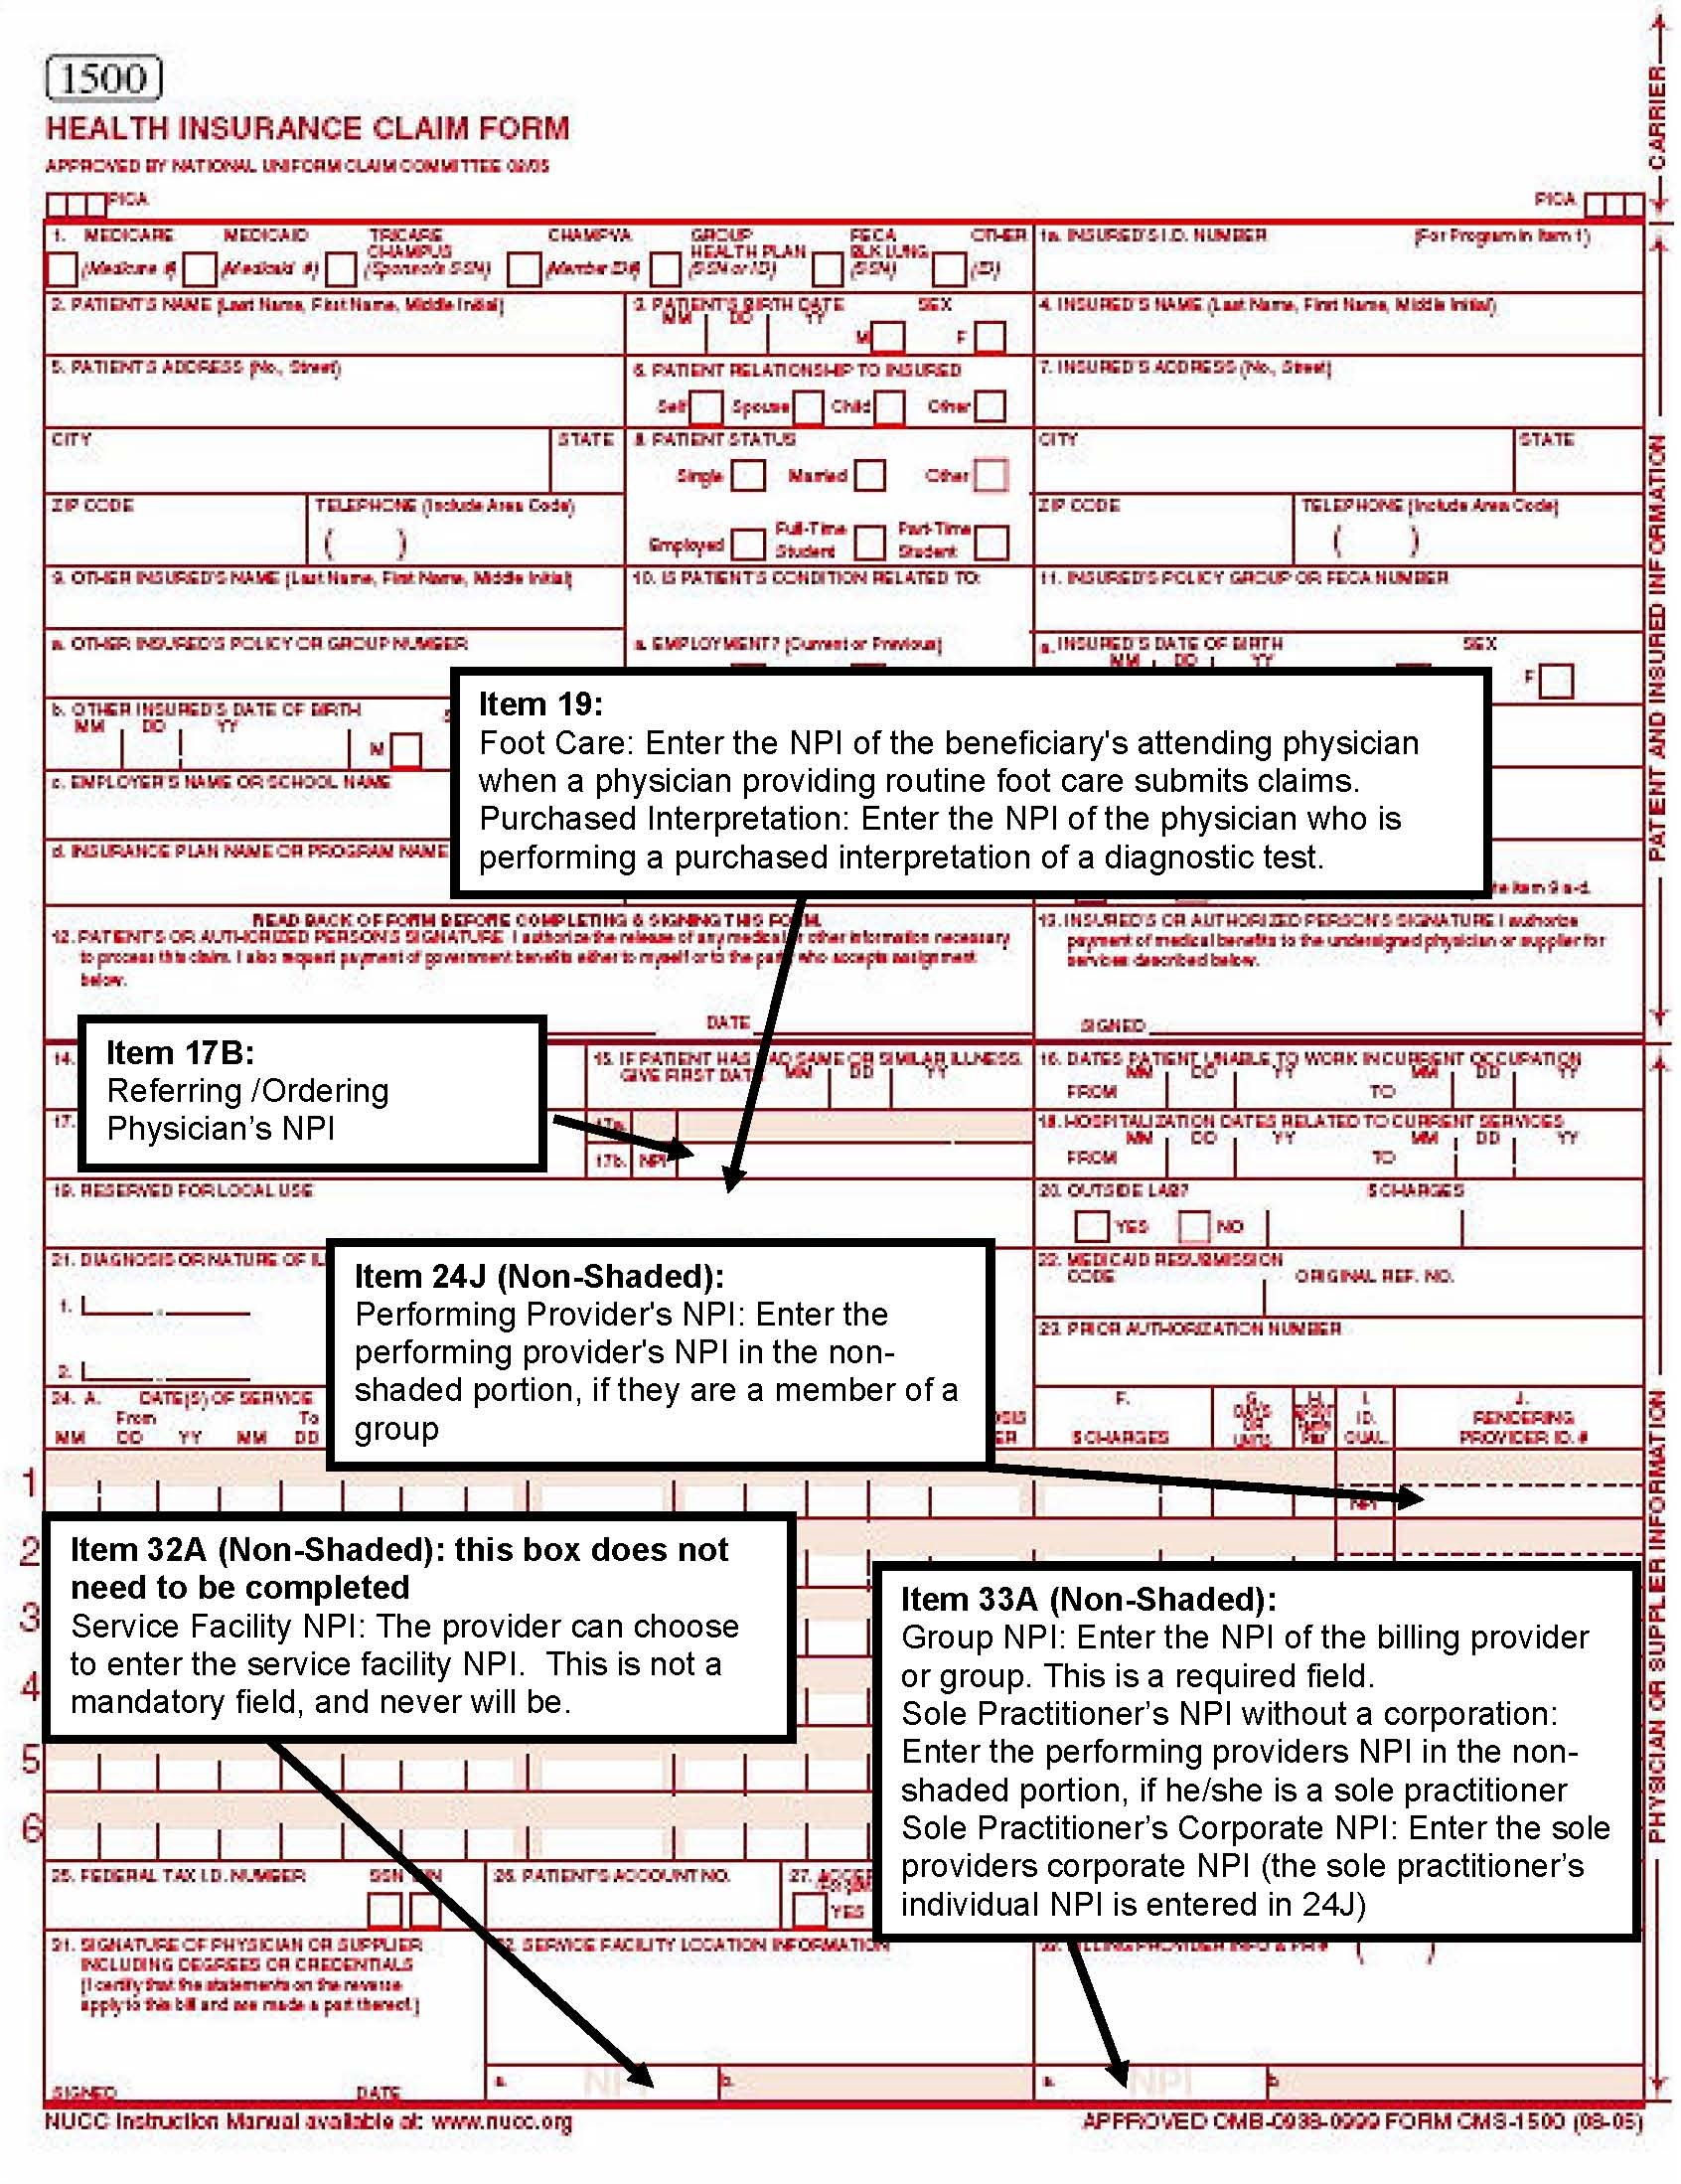 Medical Claim Form 1500 - templates free printable